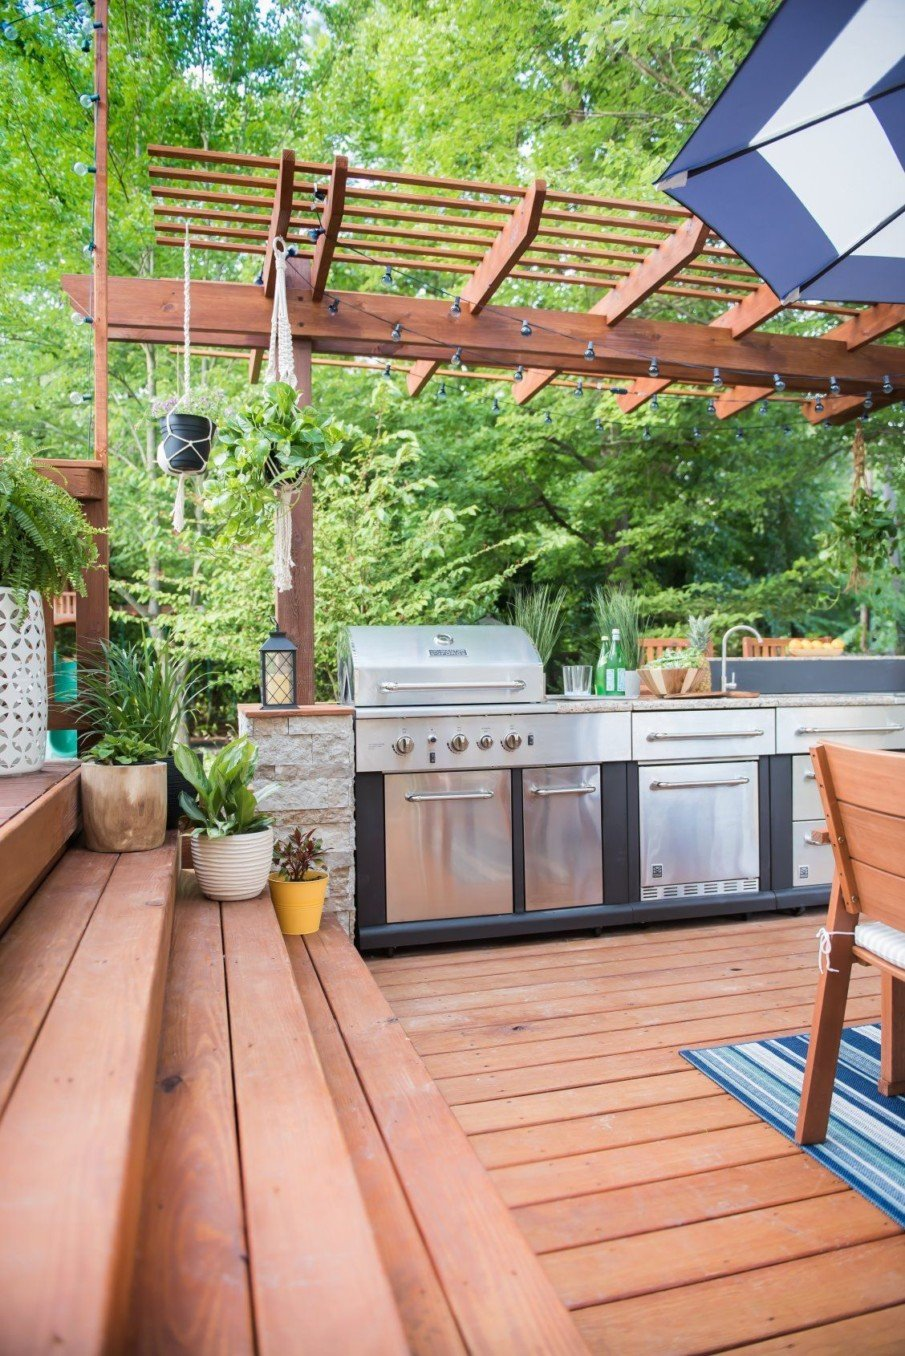 40 Outdoor Kitchen Pergola Ideas For Covered Backyard Designs